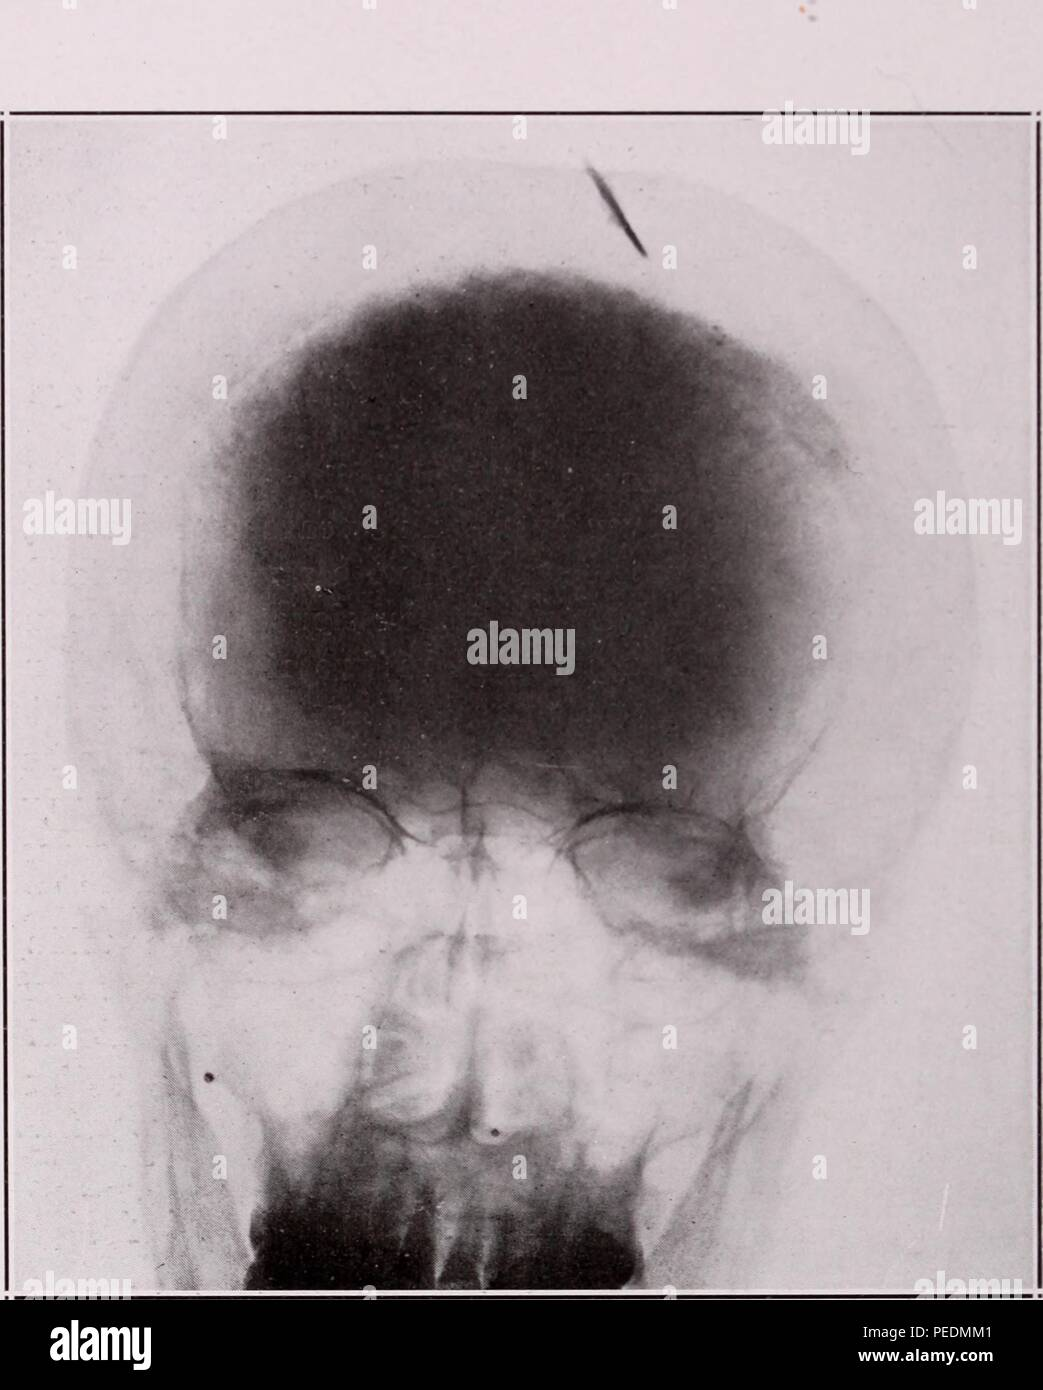 Black and white X-ray showing the anterior-posterior view of a human head with a piece of a knife blade, lodged in the cortex and pointing toward the right side, 1921. Courtesy Internet Archive. () - Stock Image